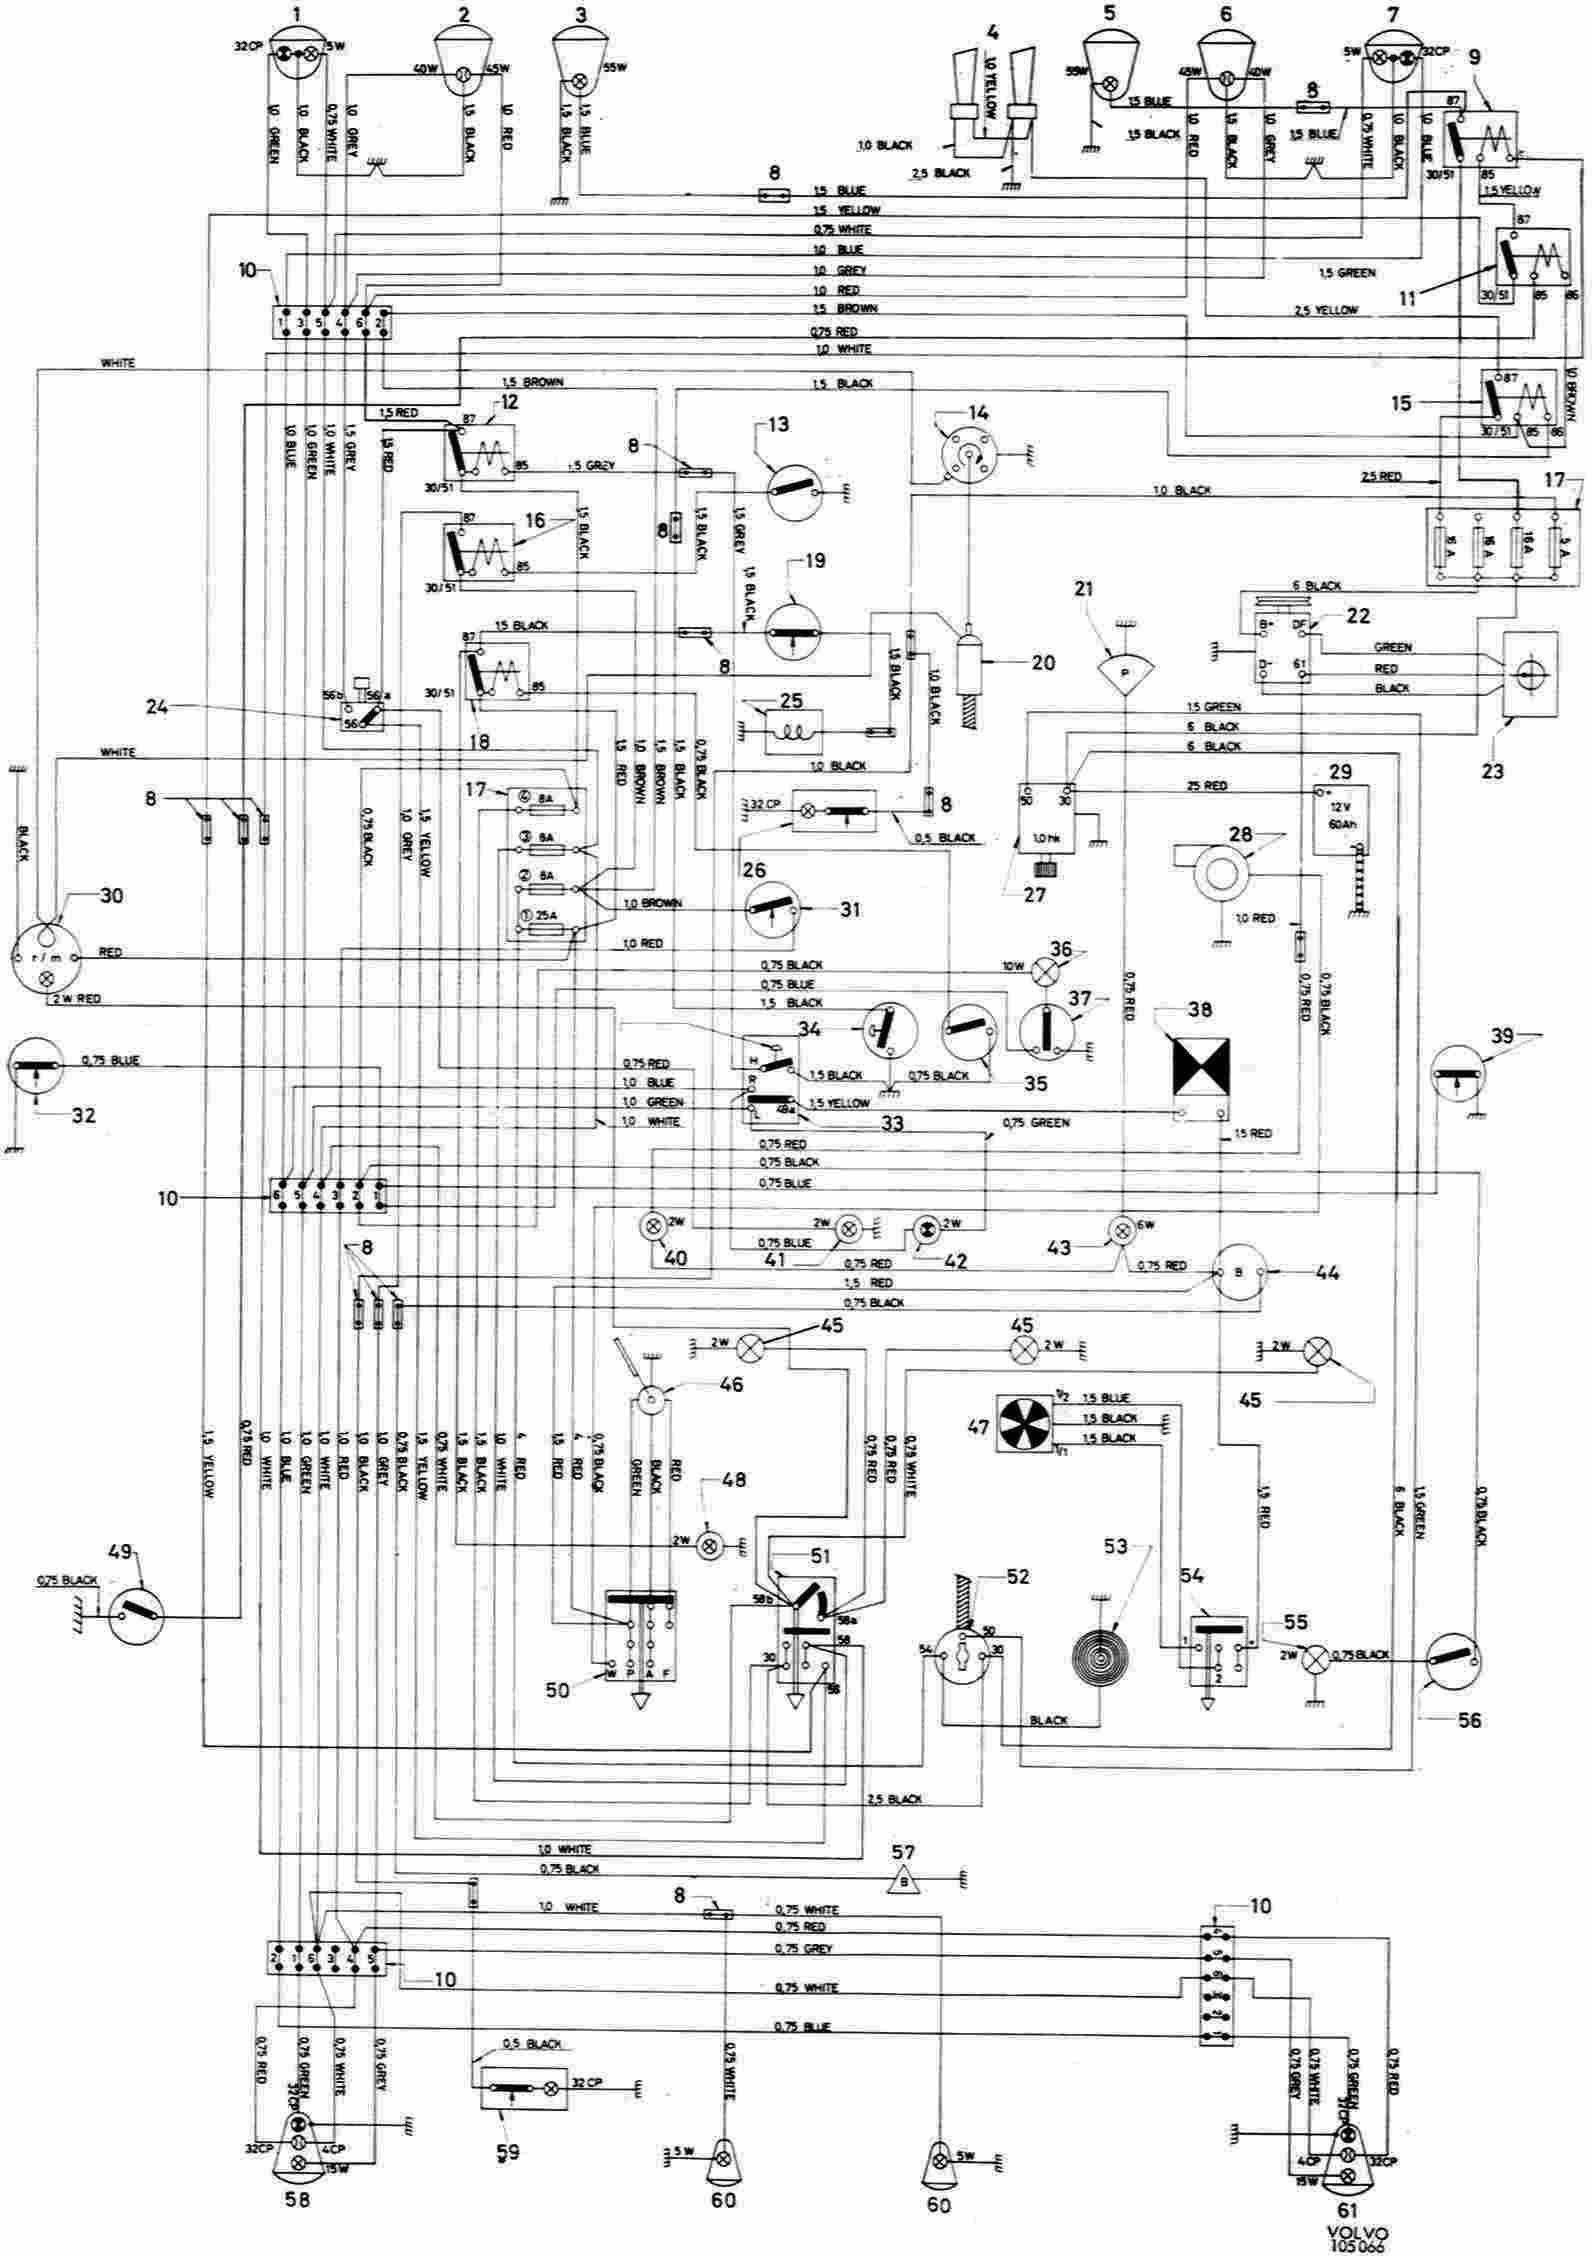 Wiring Diagram Volvo 740 Radio Block And Schematic Diagrams 1990 900 Saab Vhd Example Electrical U2022 Rh Cranejapan Co 1988 1991